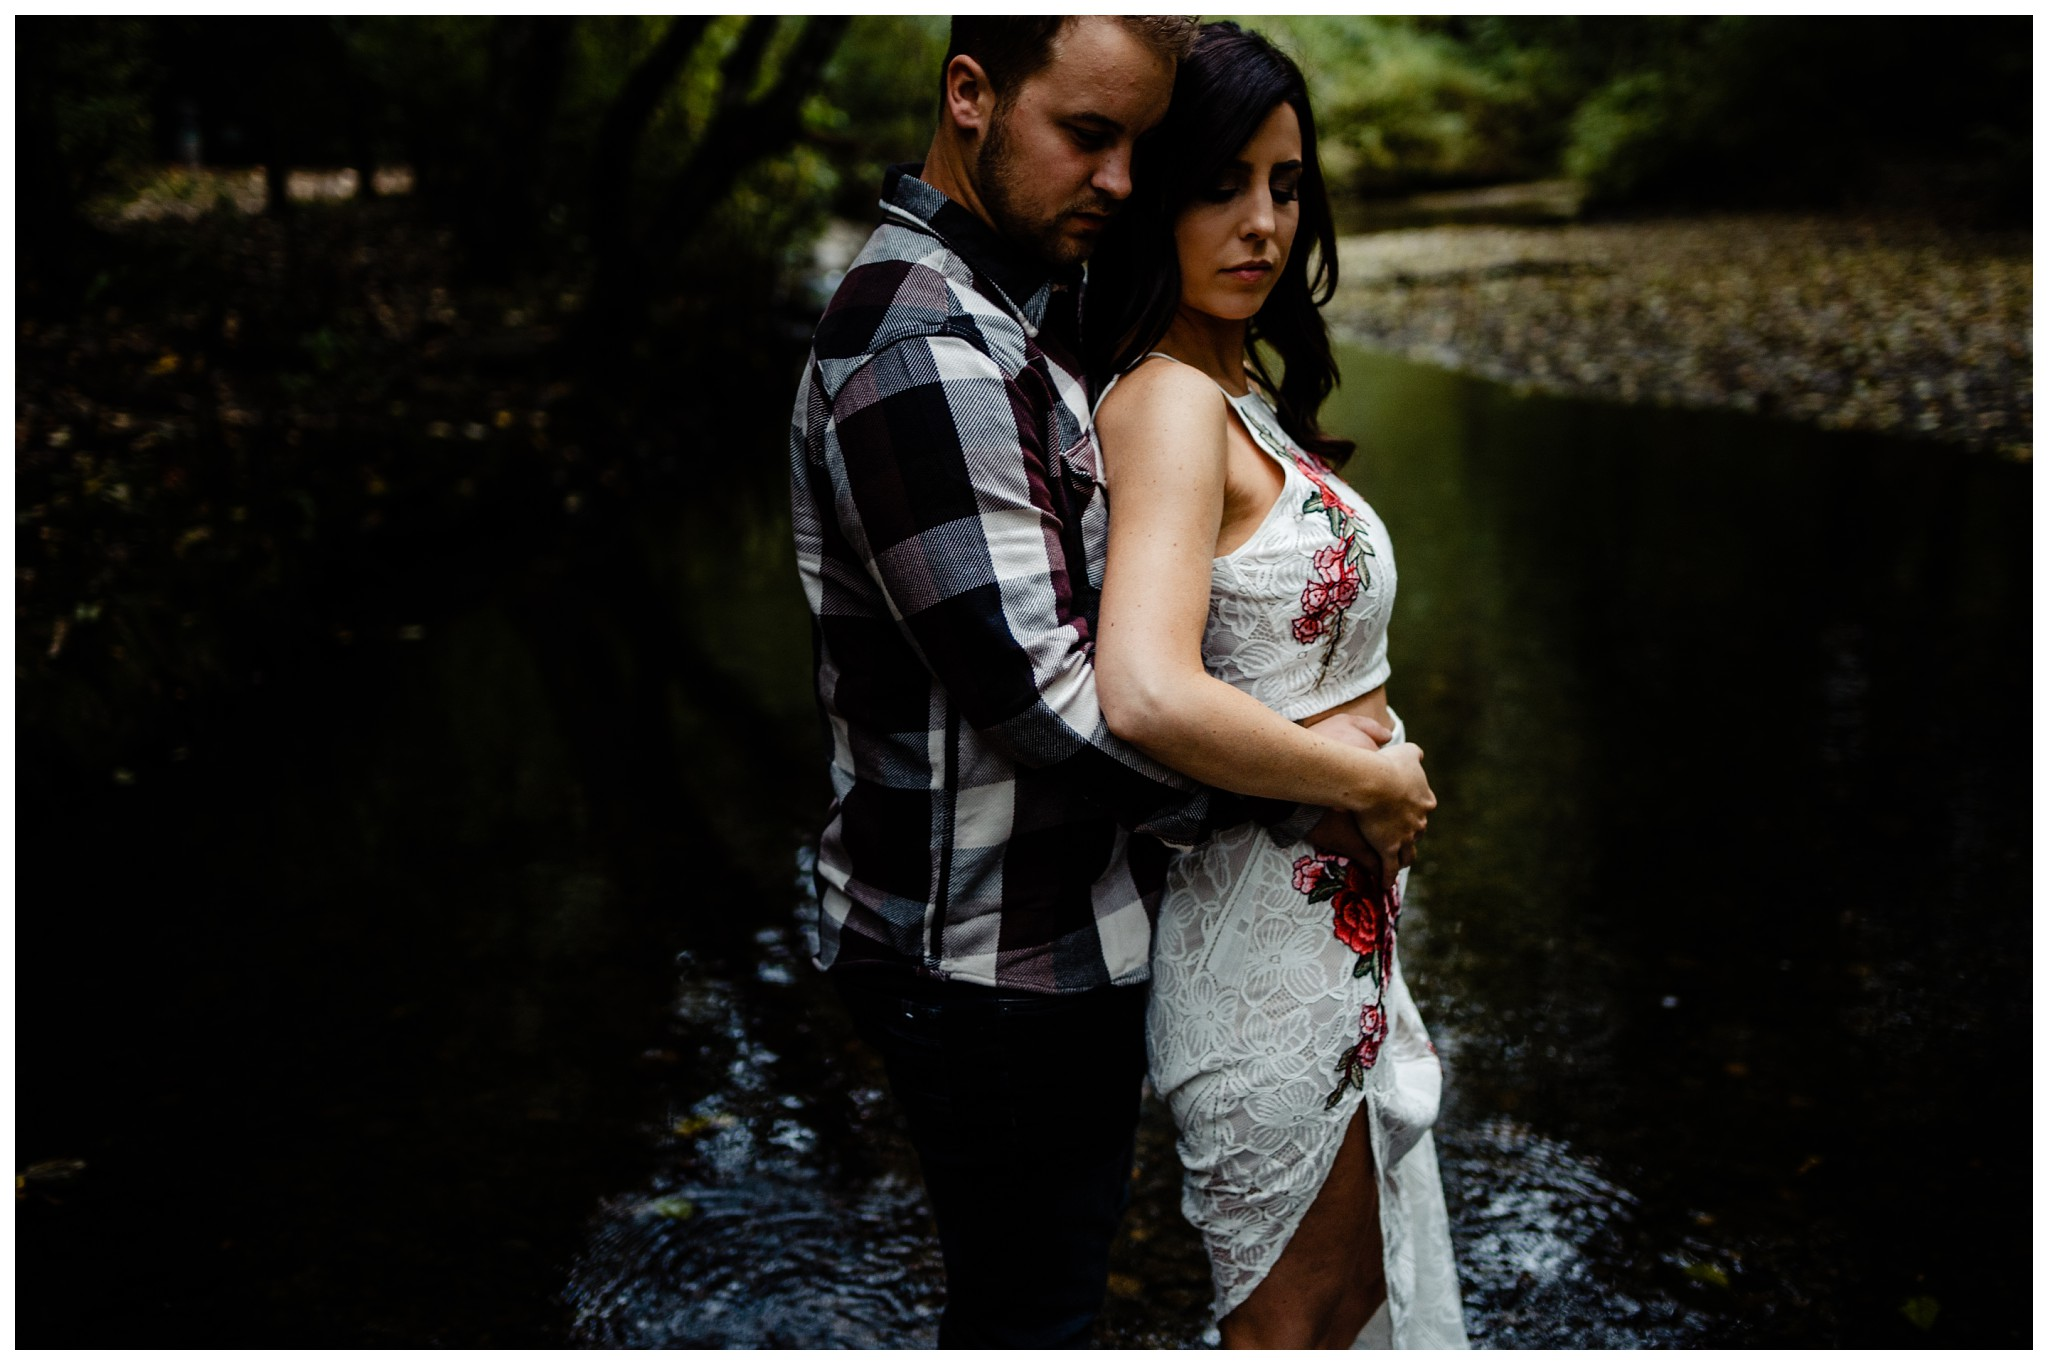 Williams Park Aldergrove Engagement Photographer Moody Fall Couple River Water Romantic Pose Yellow Leaves White Dress Dark_0018.jpg